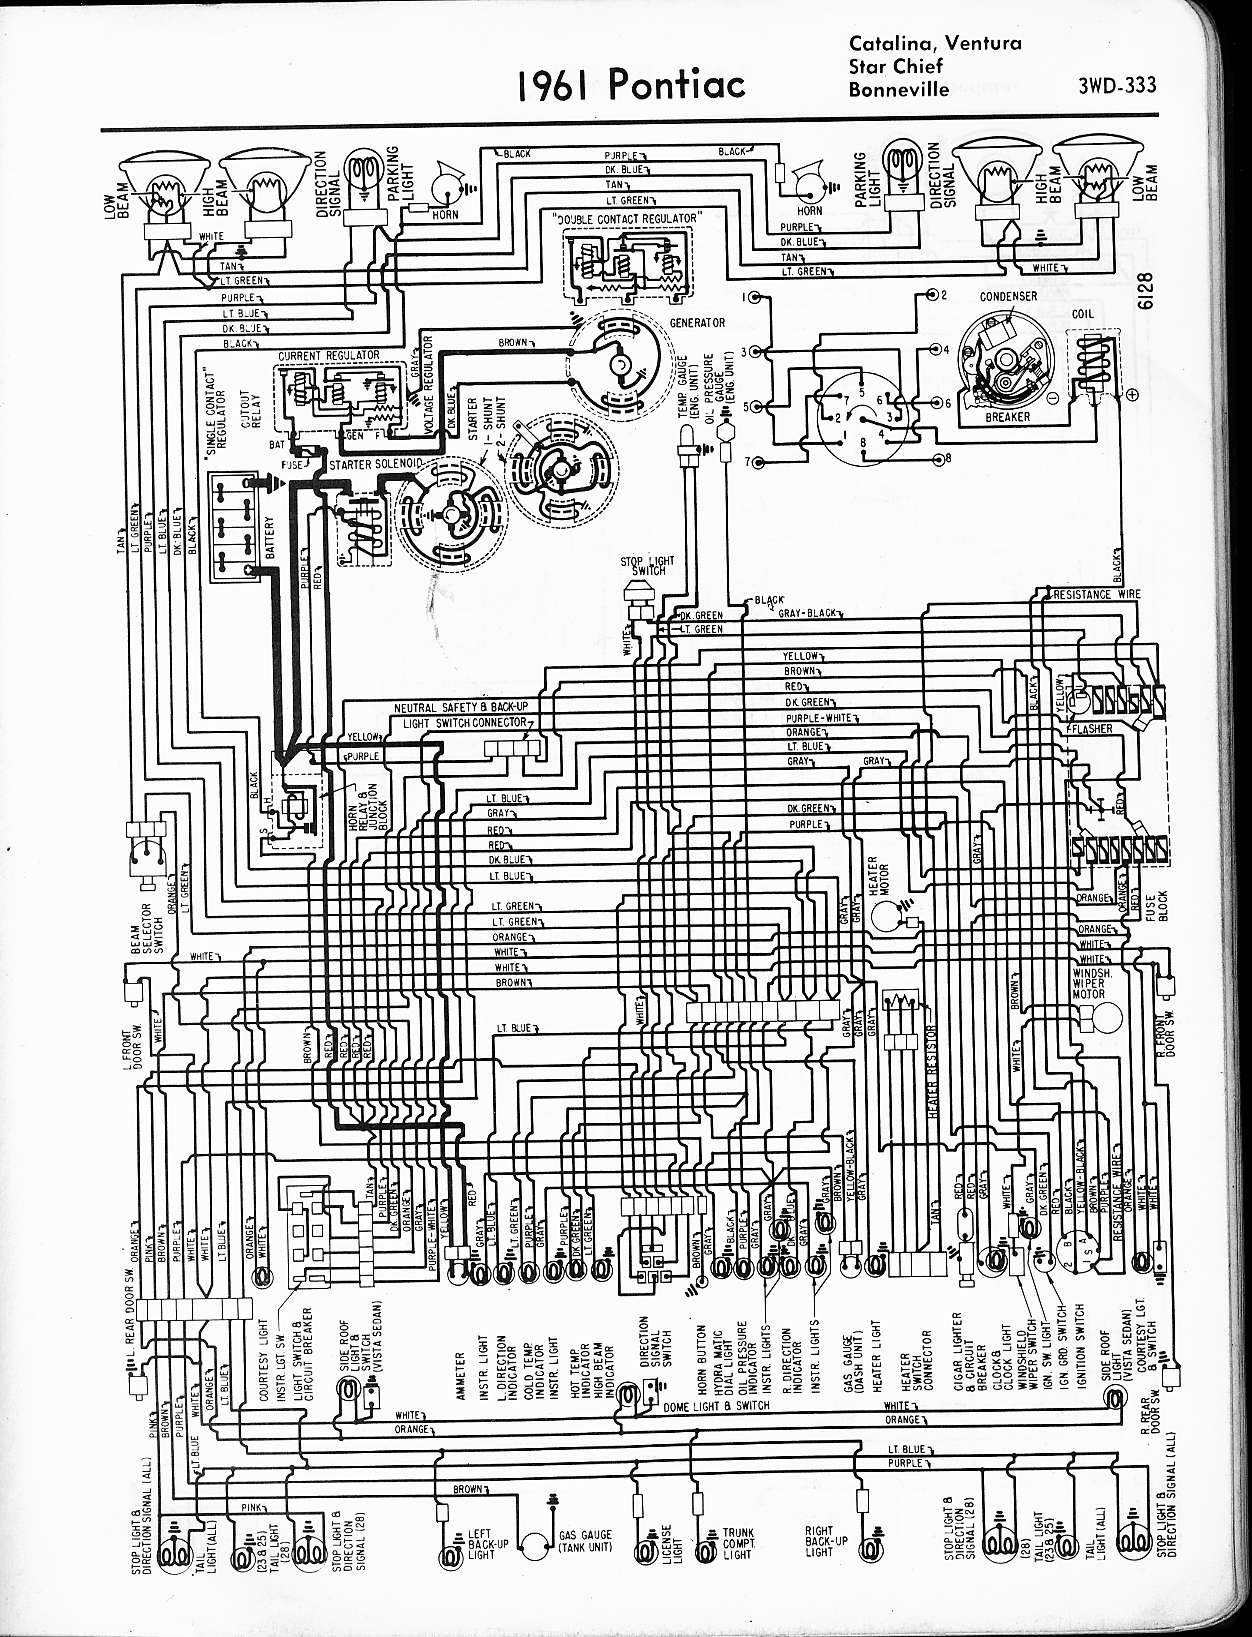 1958 Pontiac Wiring Diagram Simple Corvette Dash 1957 1965 1999 Bonneville